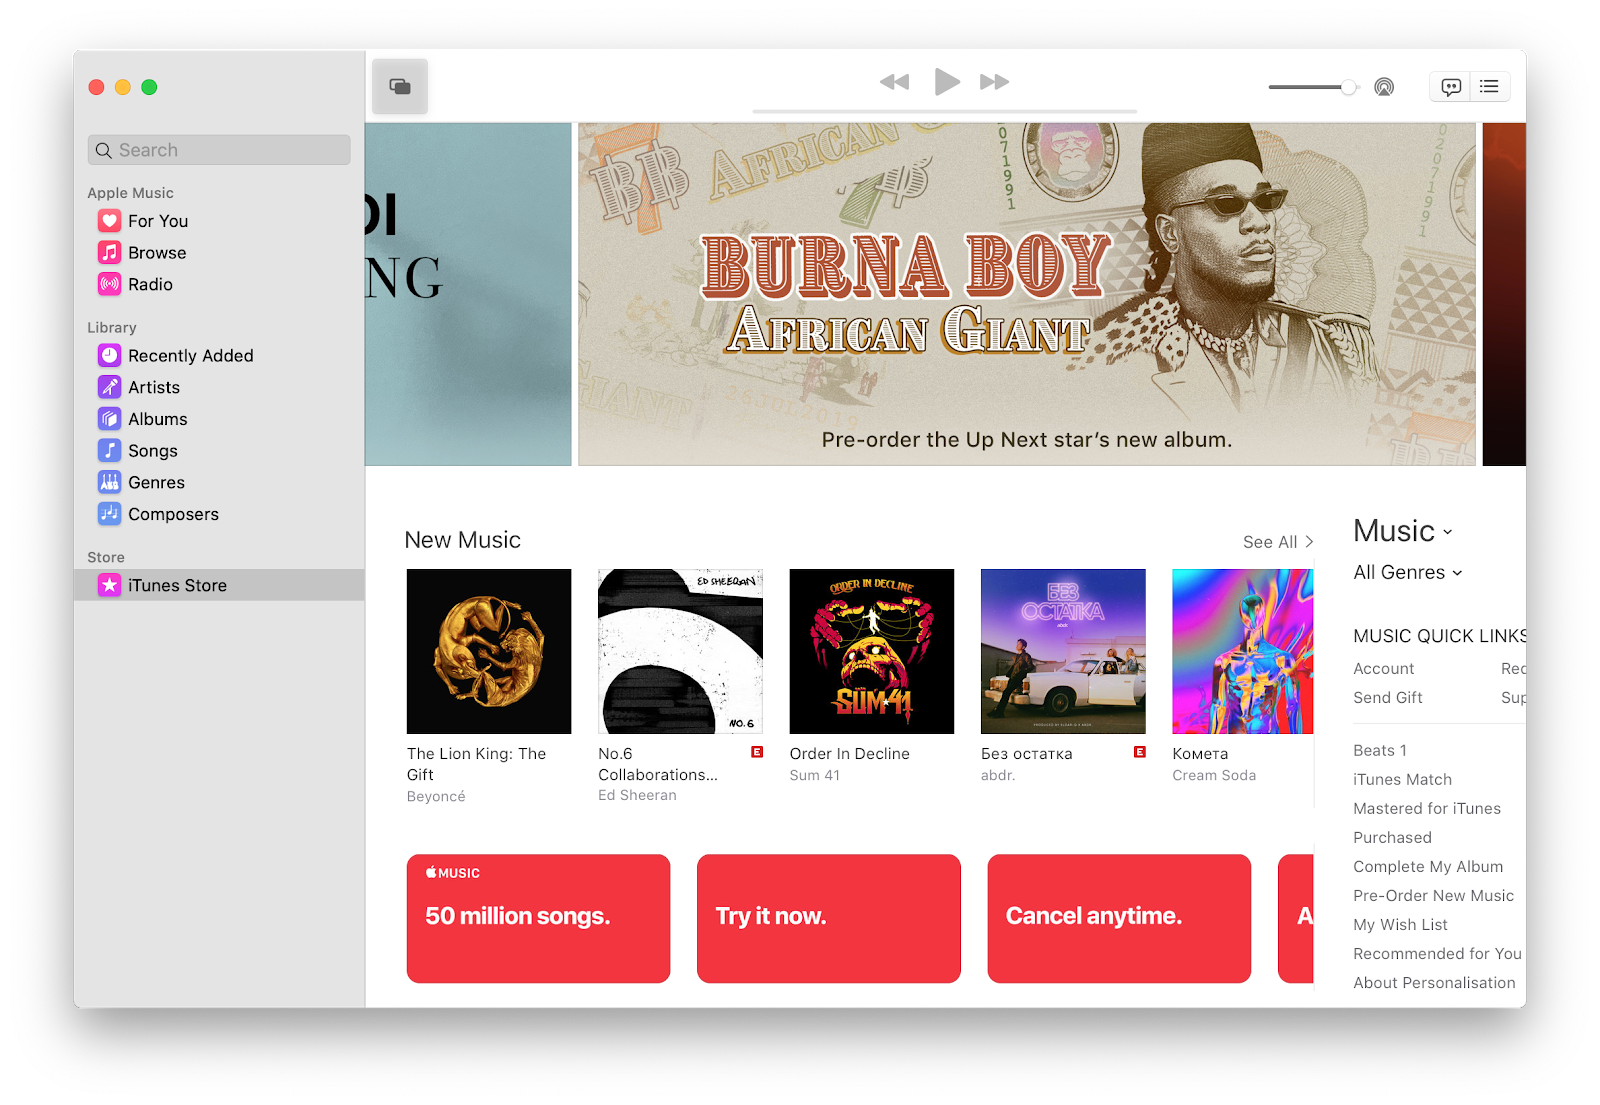 iTunes Store improvement